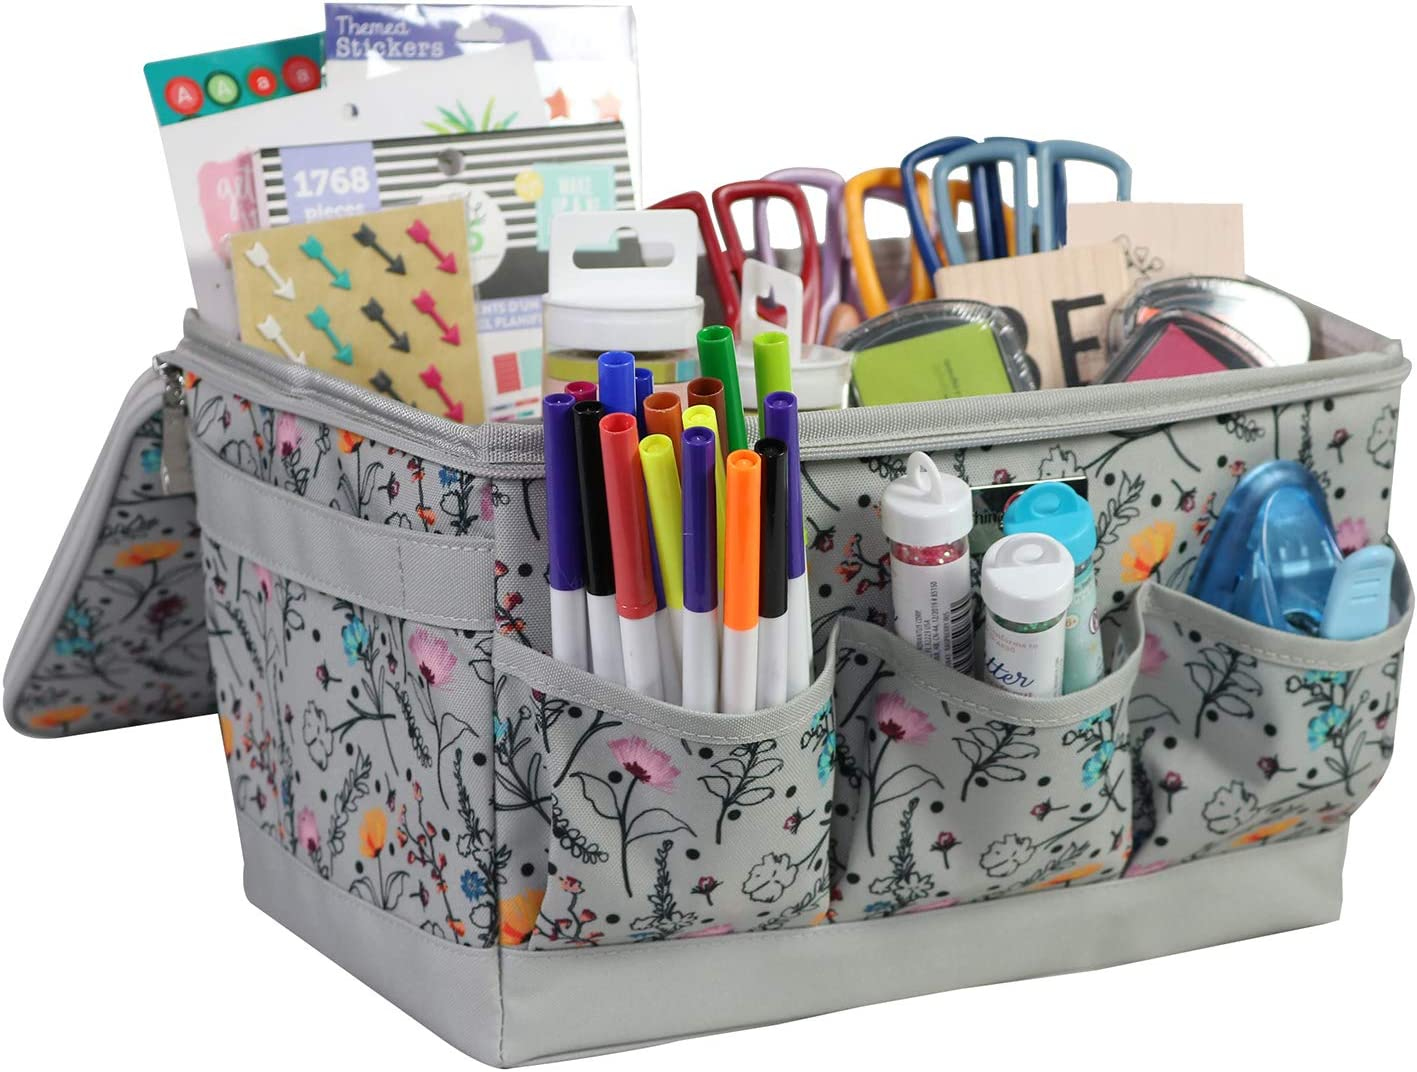 for Yarn Crafts Printed Floral Includes Scrapbook Tote /& Craft Caddy Yarn Tote Everything Mary Craft Organizer Collection Set /& More Sewing Spinning Caddy